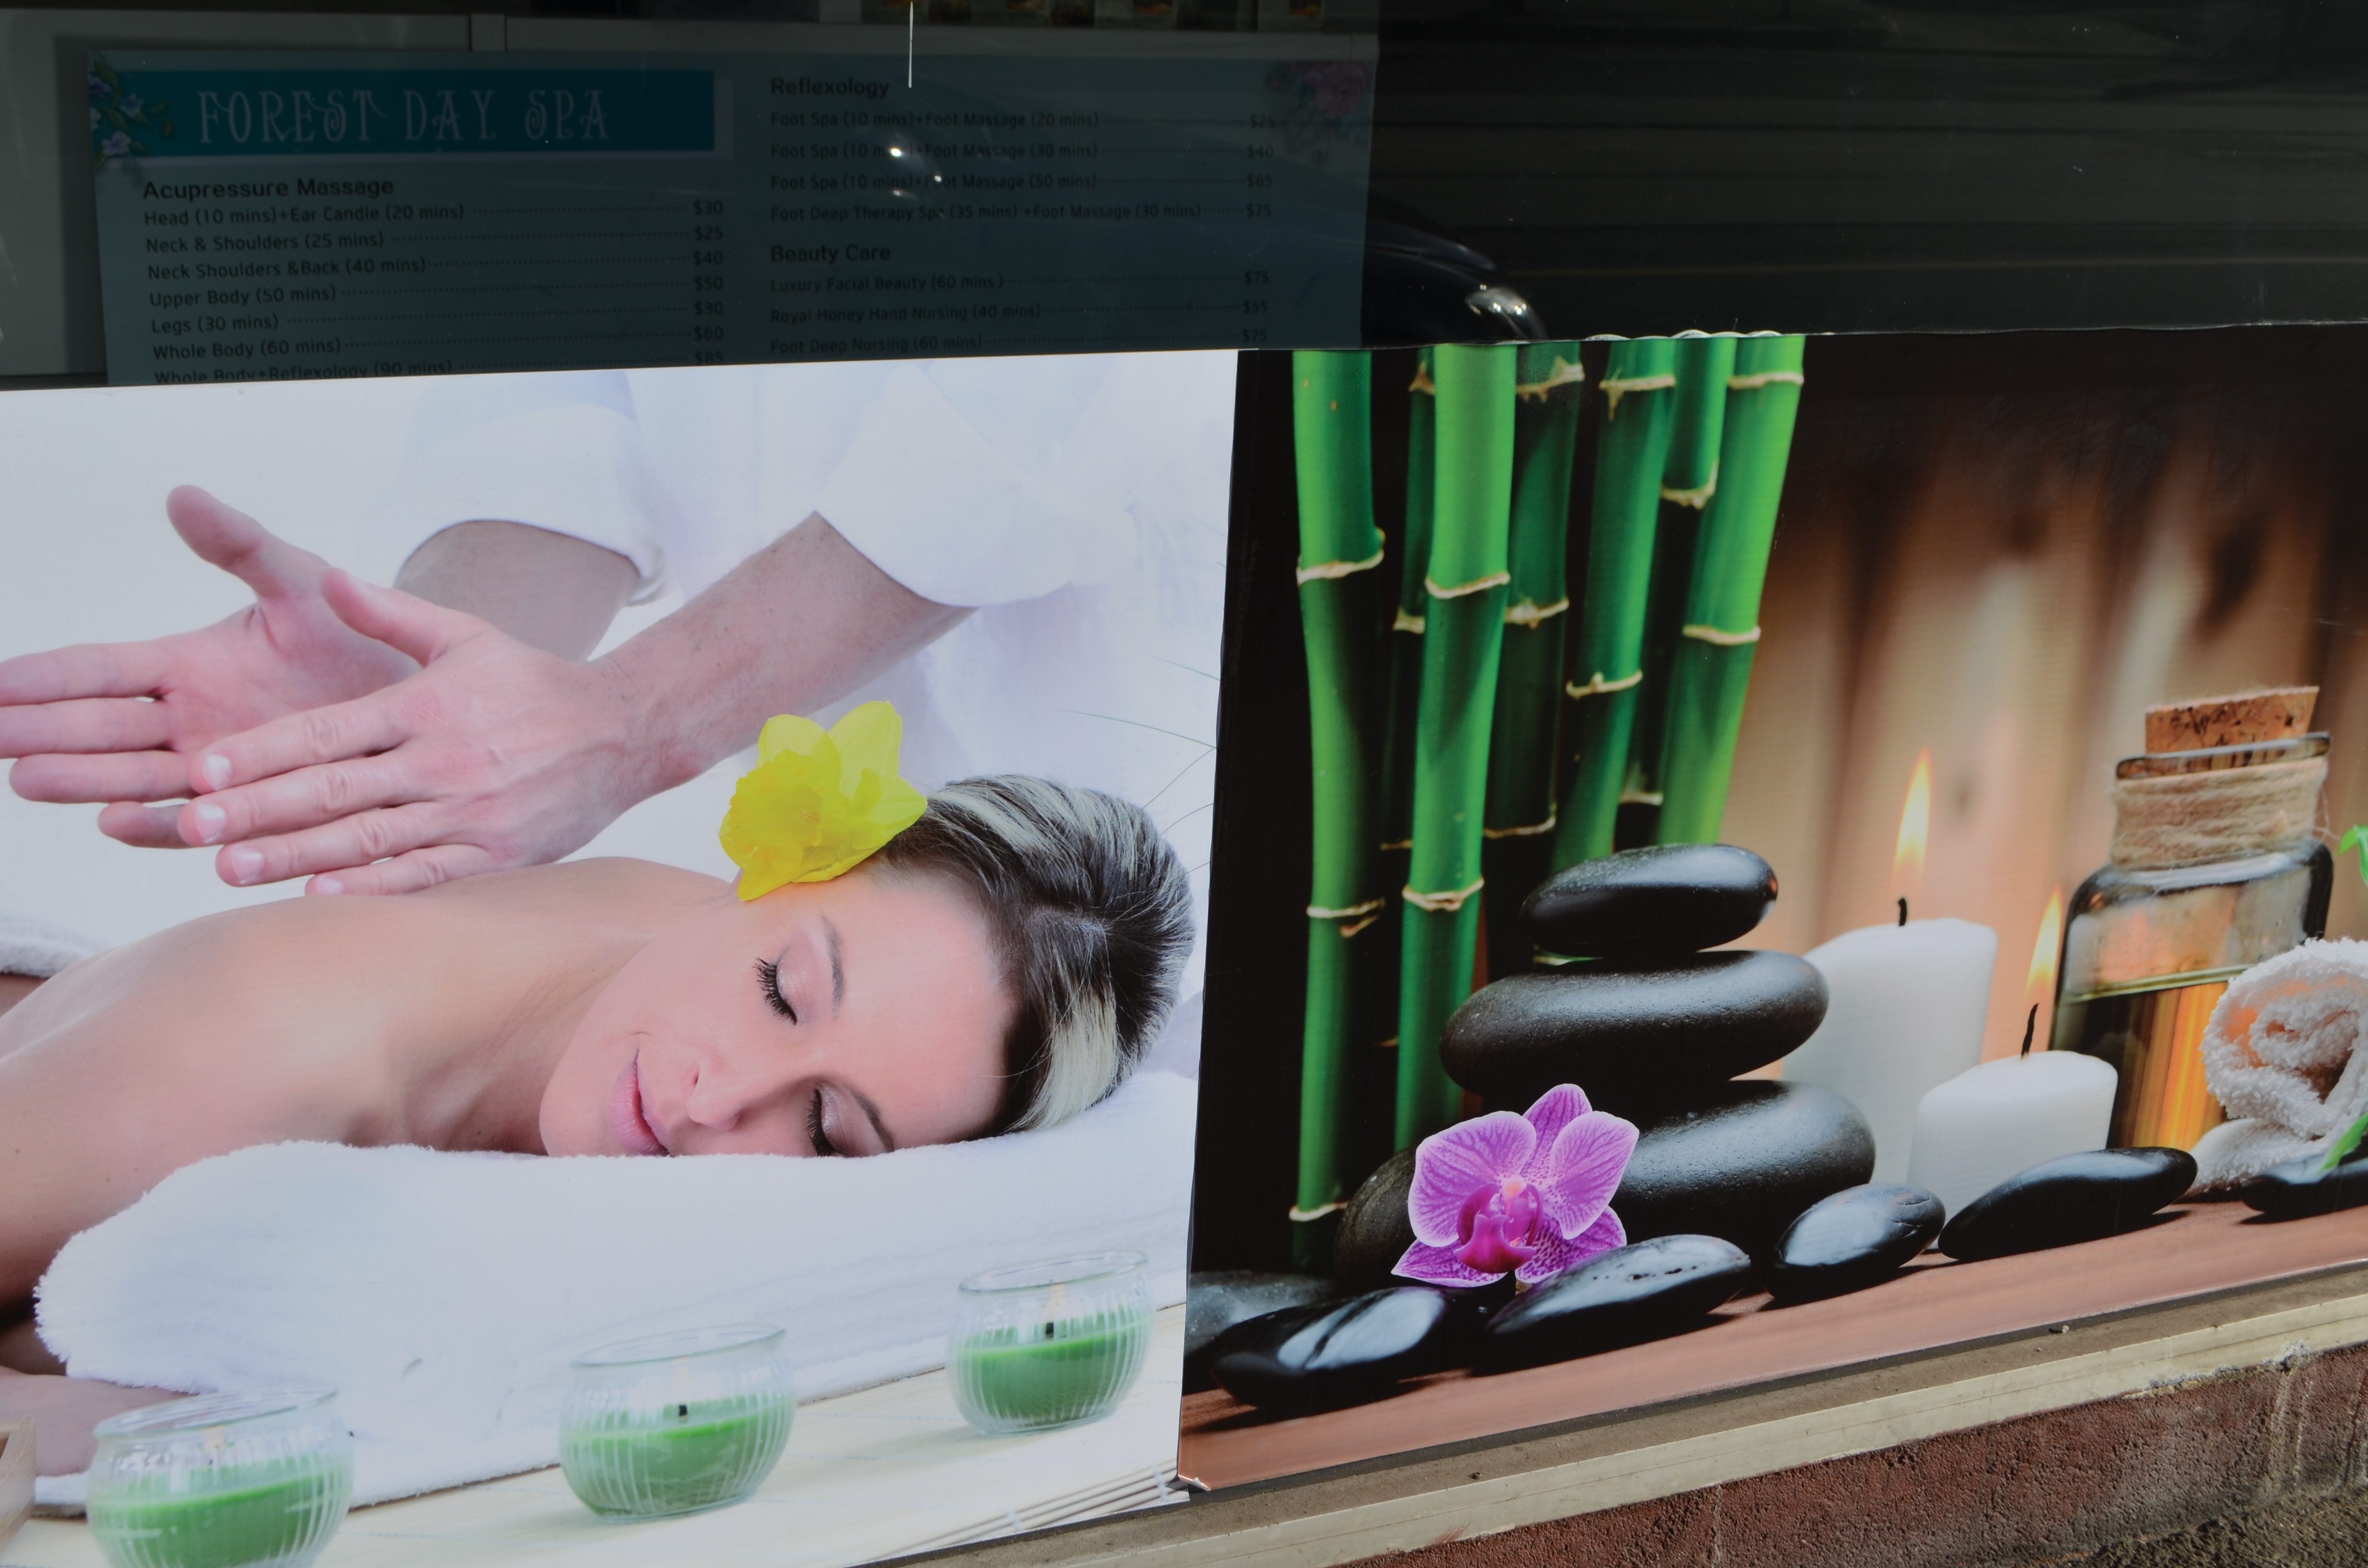 Forest Day Spa 325 Sydney Road